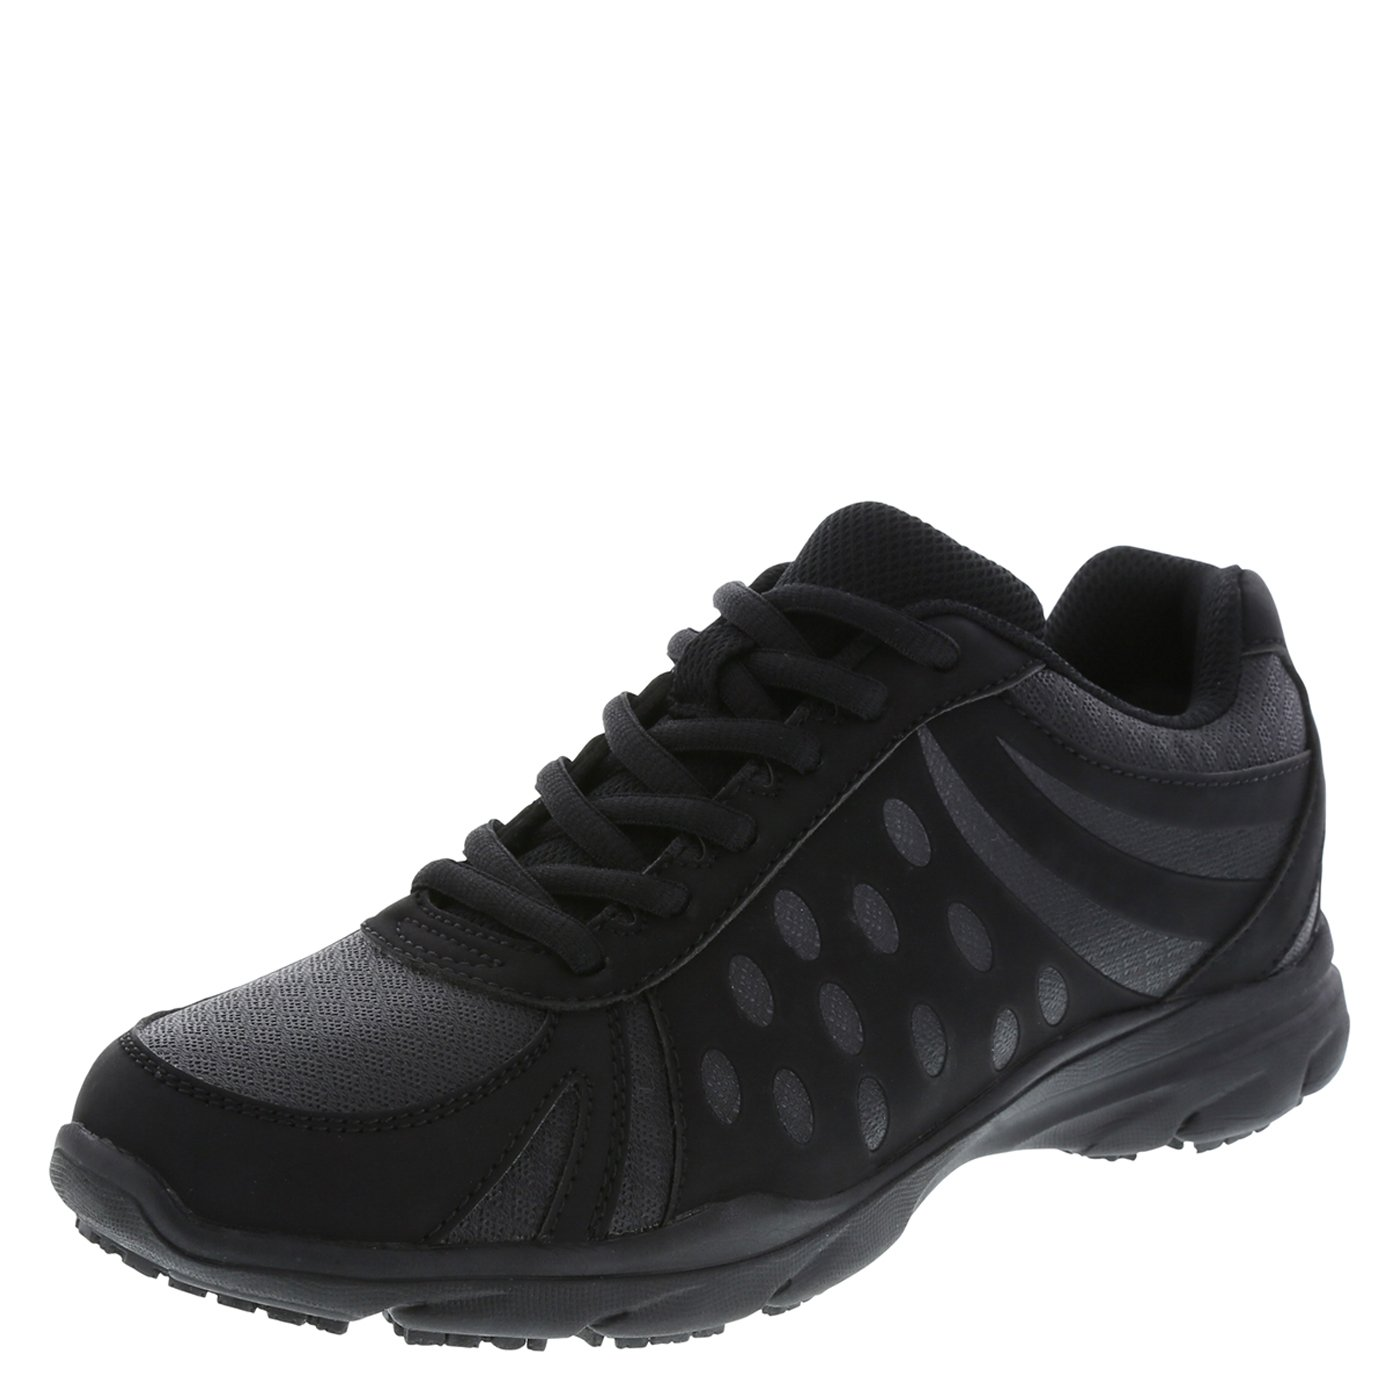 safeTstep Slip Resistant Women's Black Women's Camina Runner 7 Regular